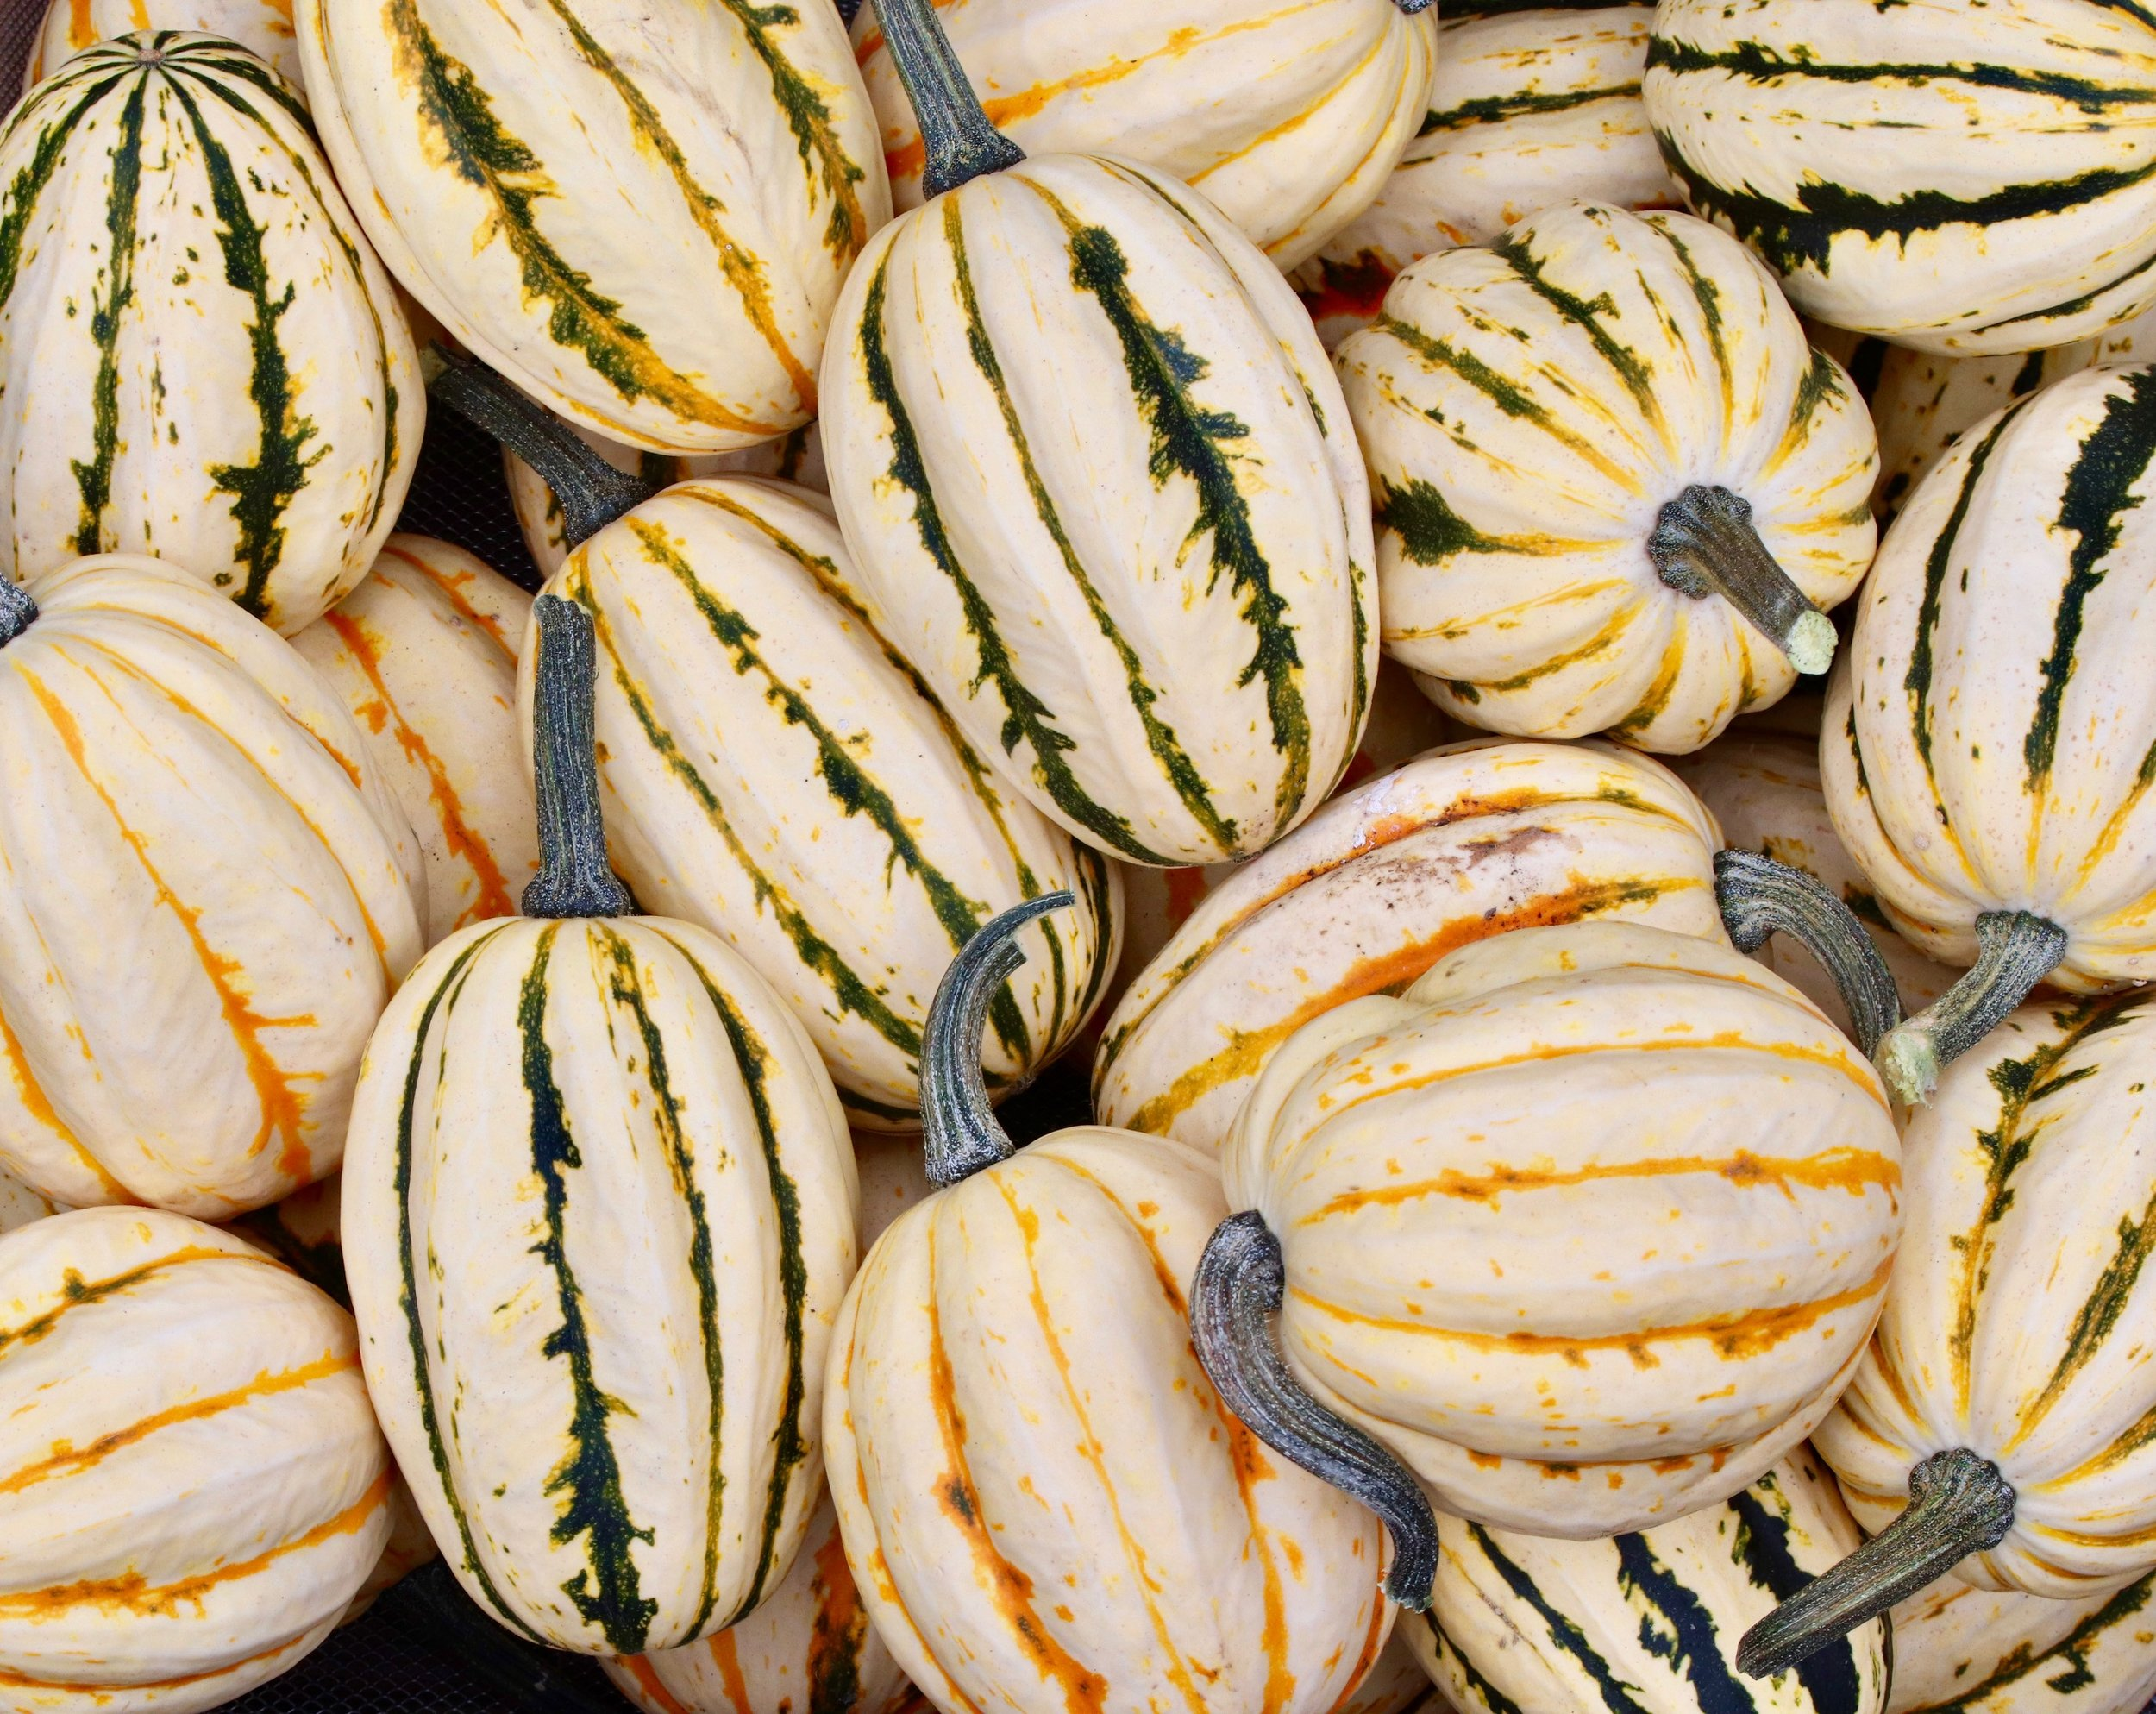 A horticultural anomaly is likely what caused this plant to produce 10 times more winter squash than what we are used to harvesting from one plant.